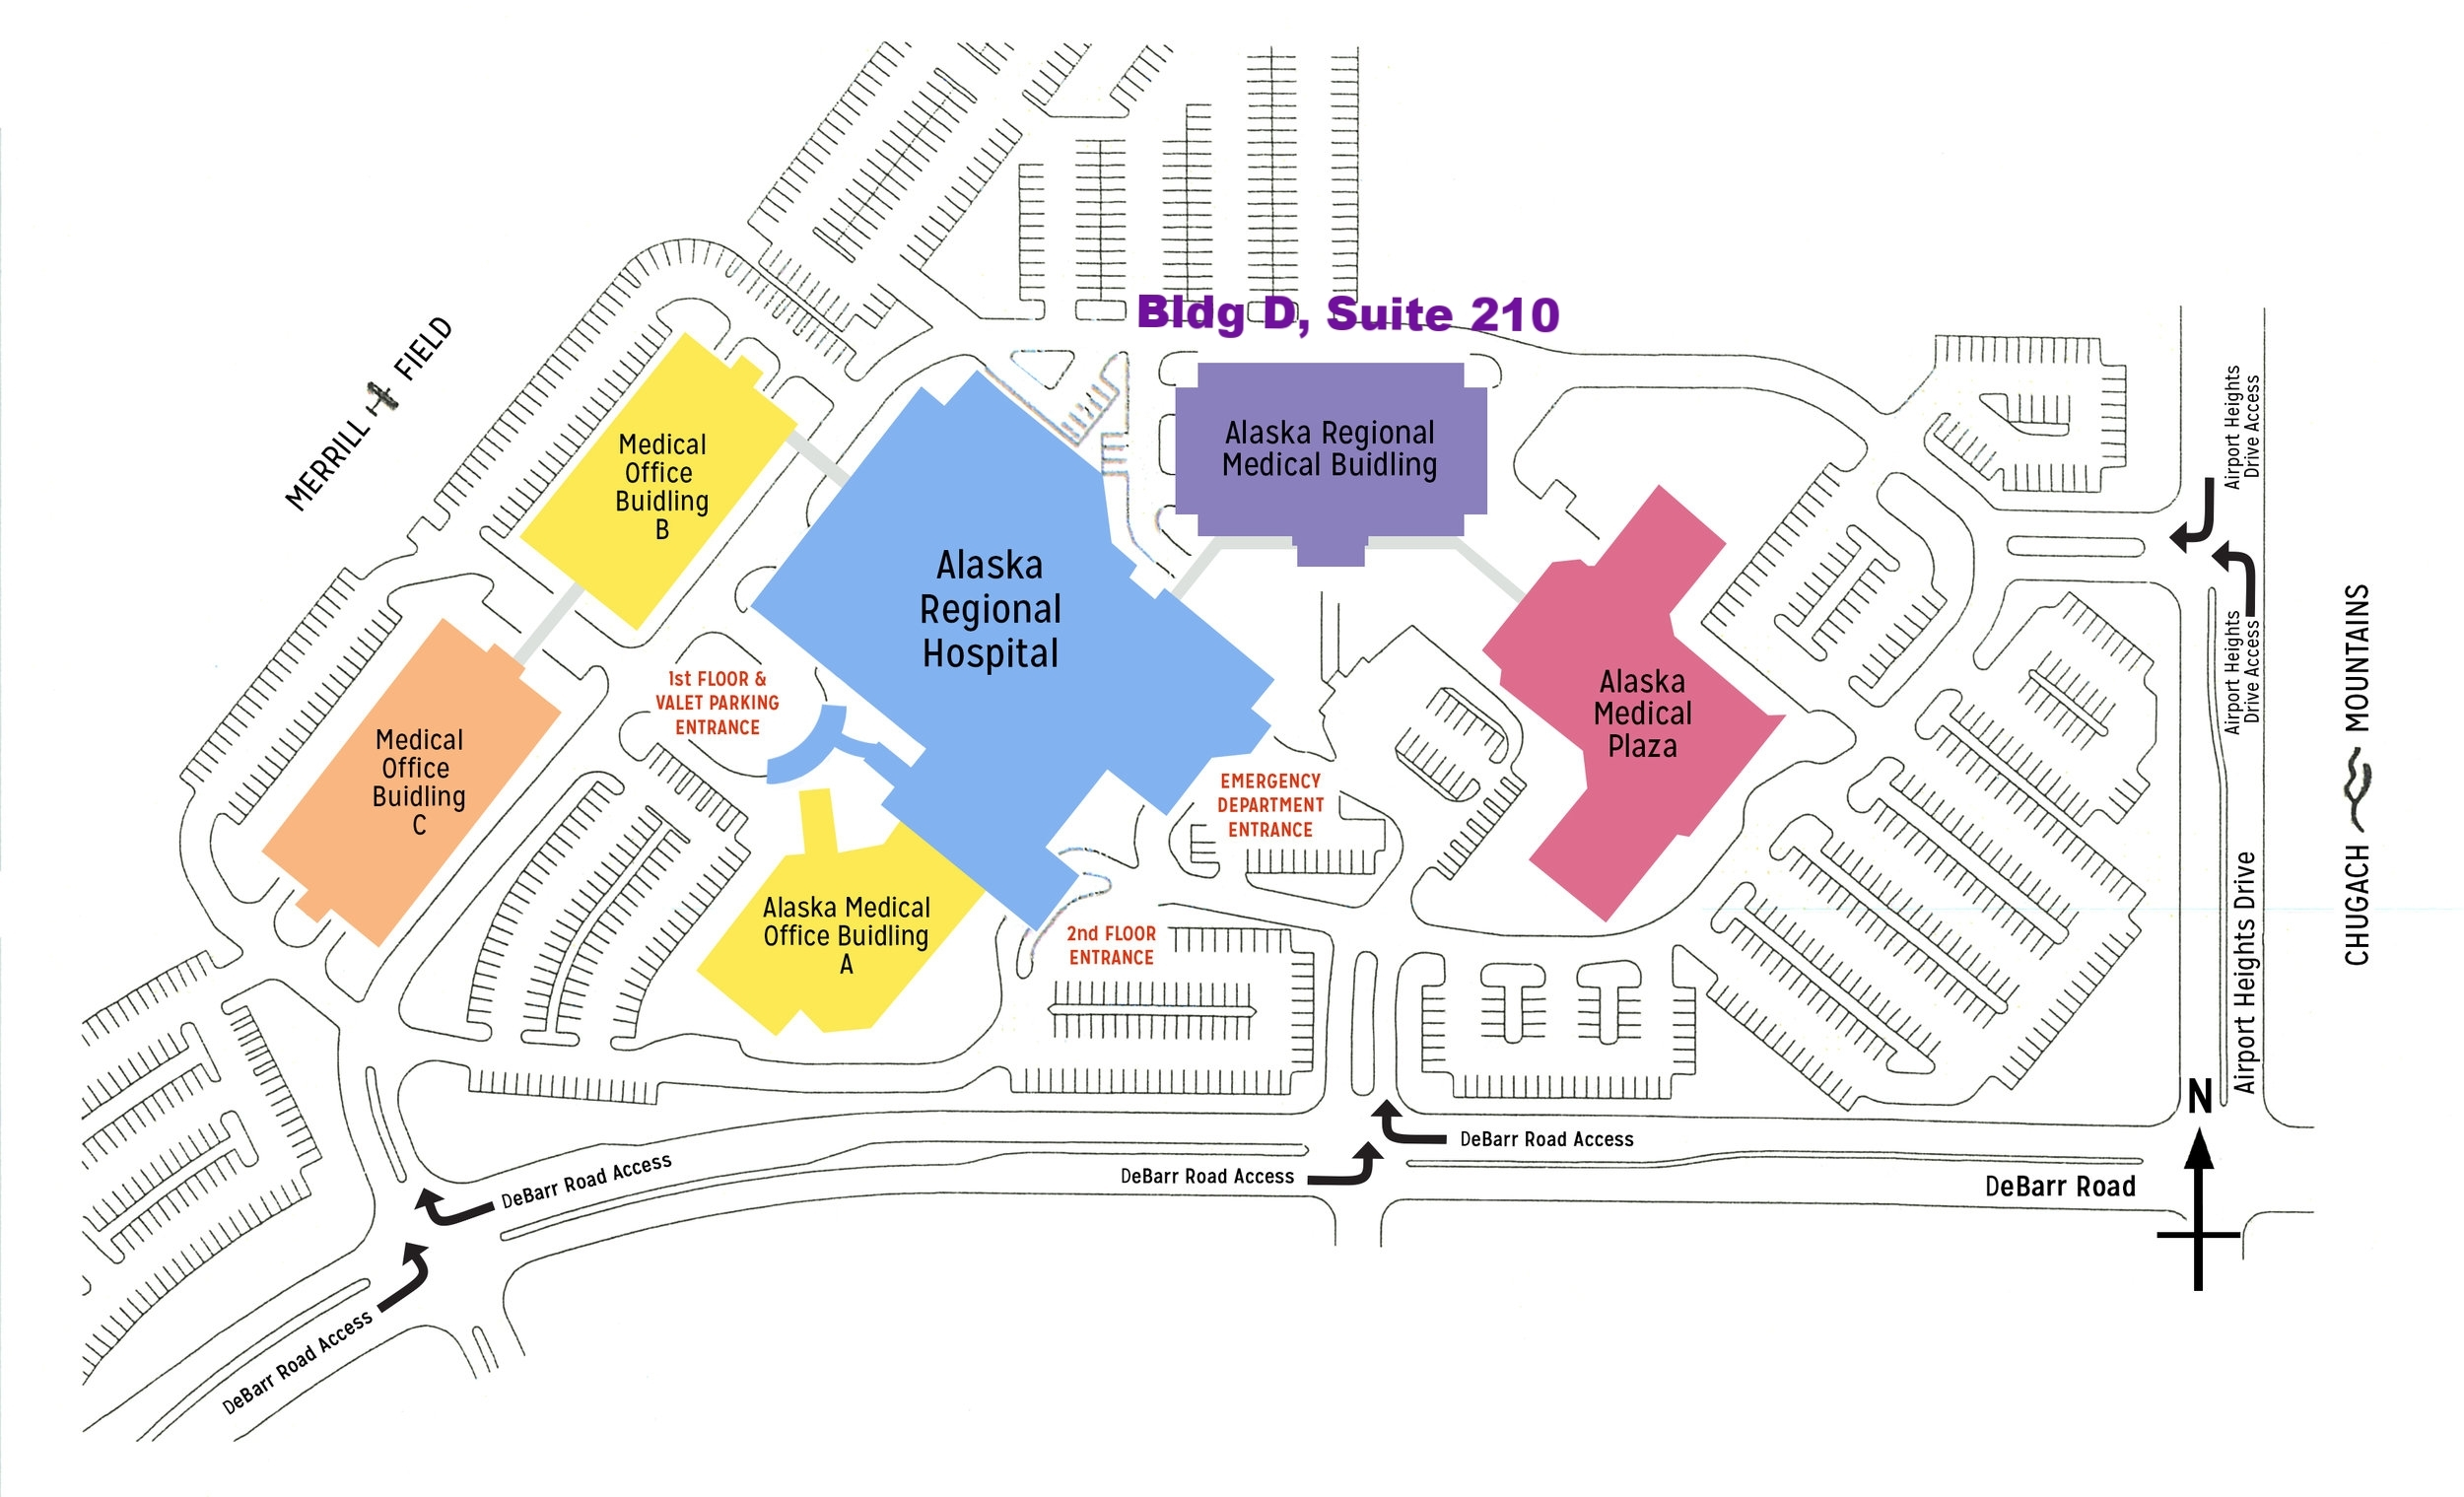 Our office is located in Building D (Purple Building on this map), Suite 210